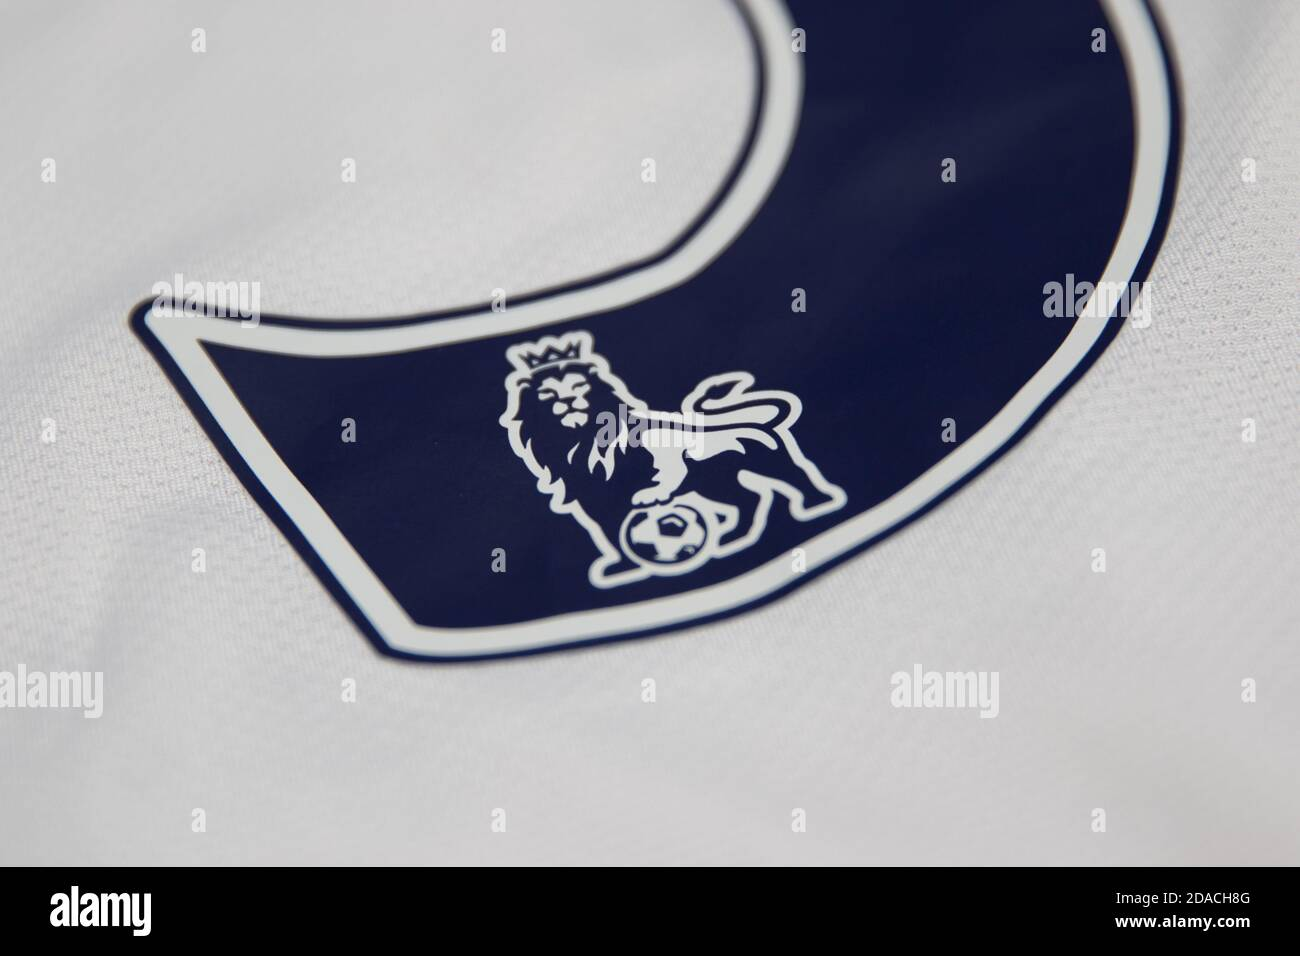 premier-league-lion-with-football-logo-inset-within-the-a-back-of-shirt-number-2DACH8G.jpg